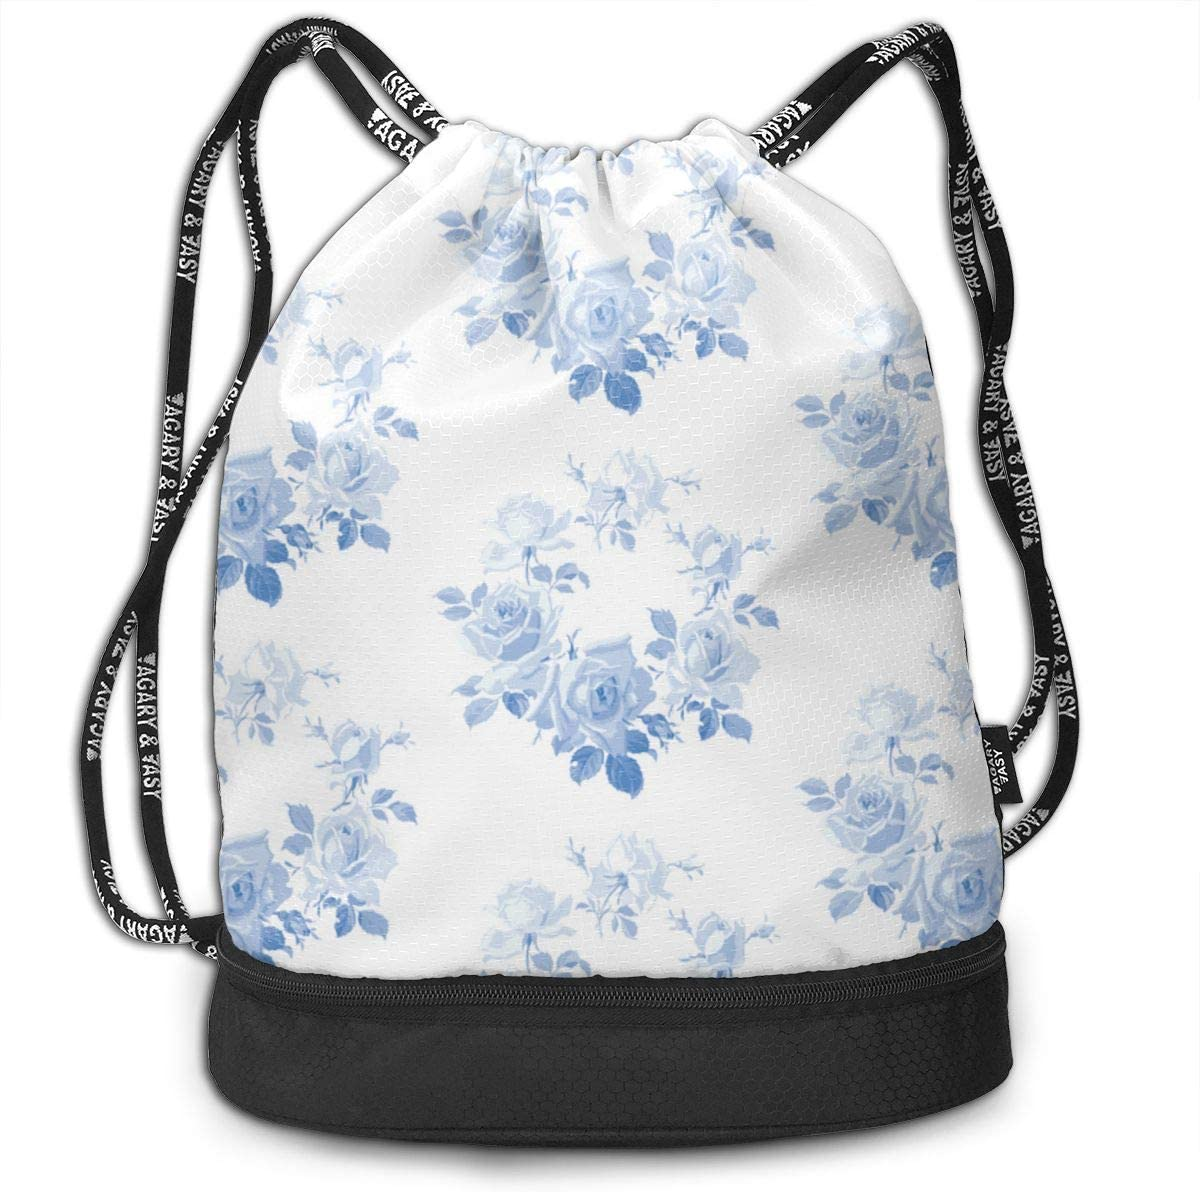 Blue Rose Wreath Blueberry Blue Drawstring Backpack Sports Athletic Gym Cinch Sack String Storage Bags for Hiking Travel Beach